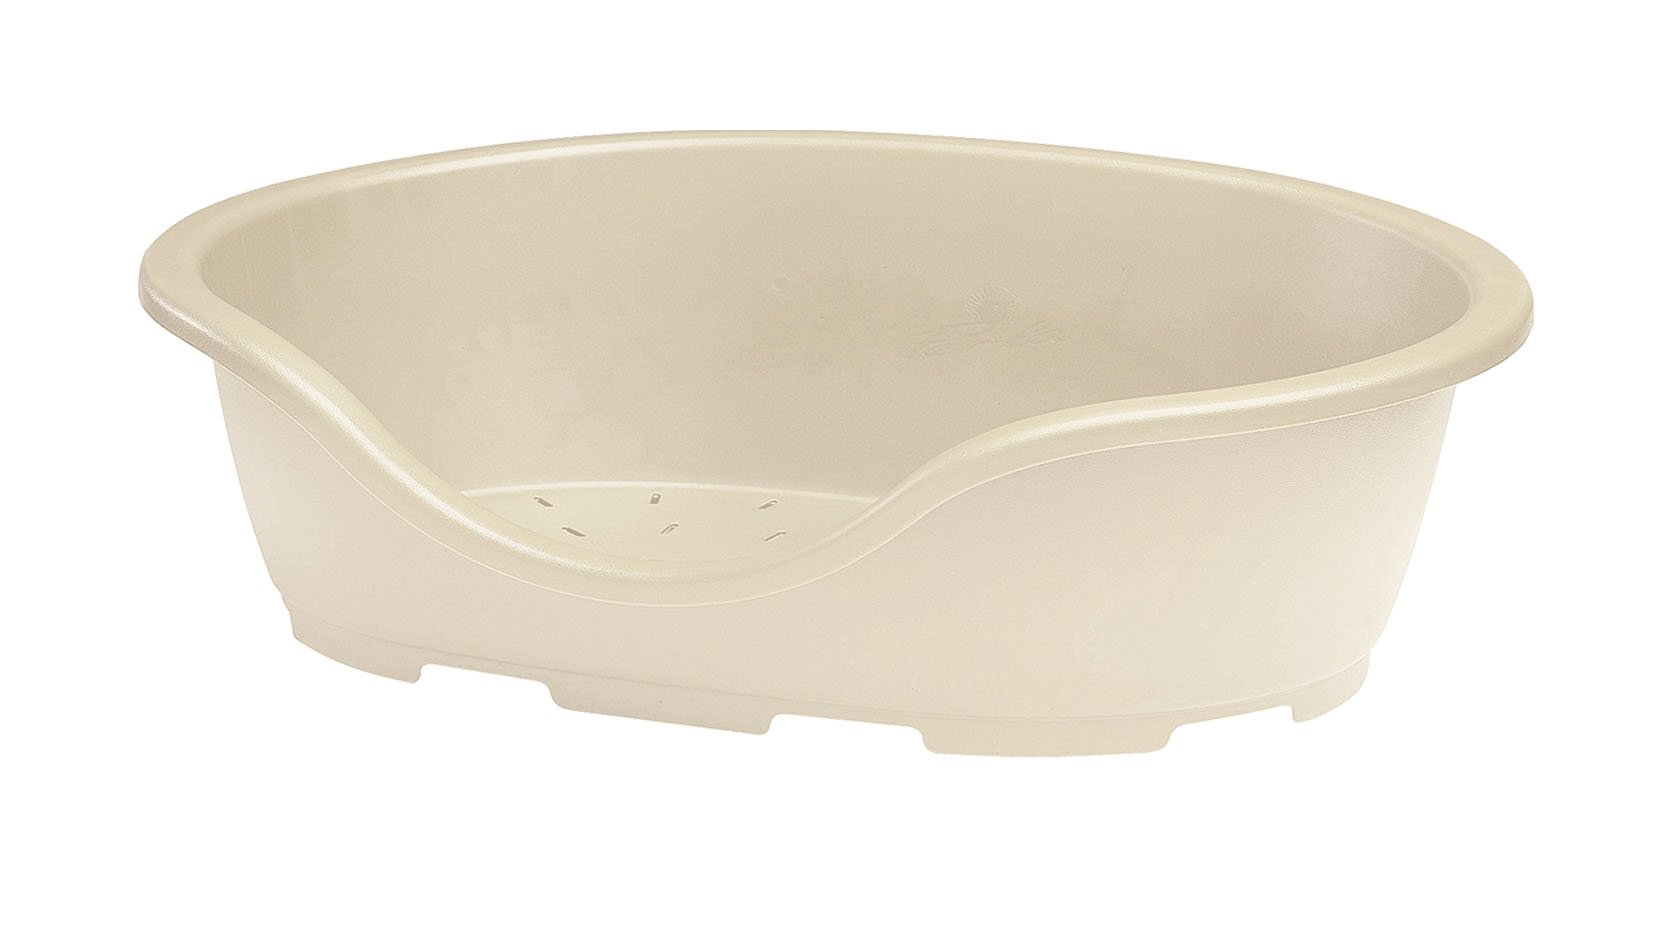 Marchioro Perla 5 Bed for Pets, 32.75 inches, Beige